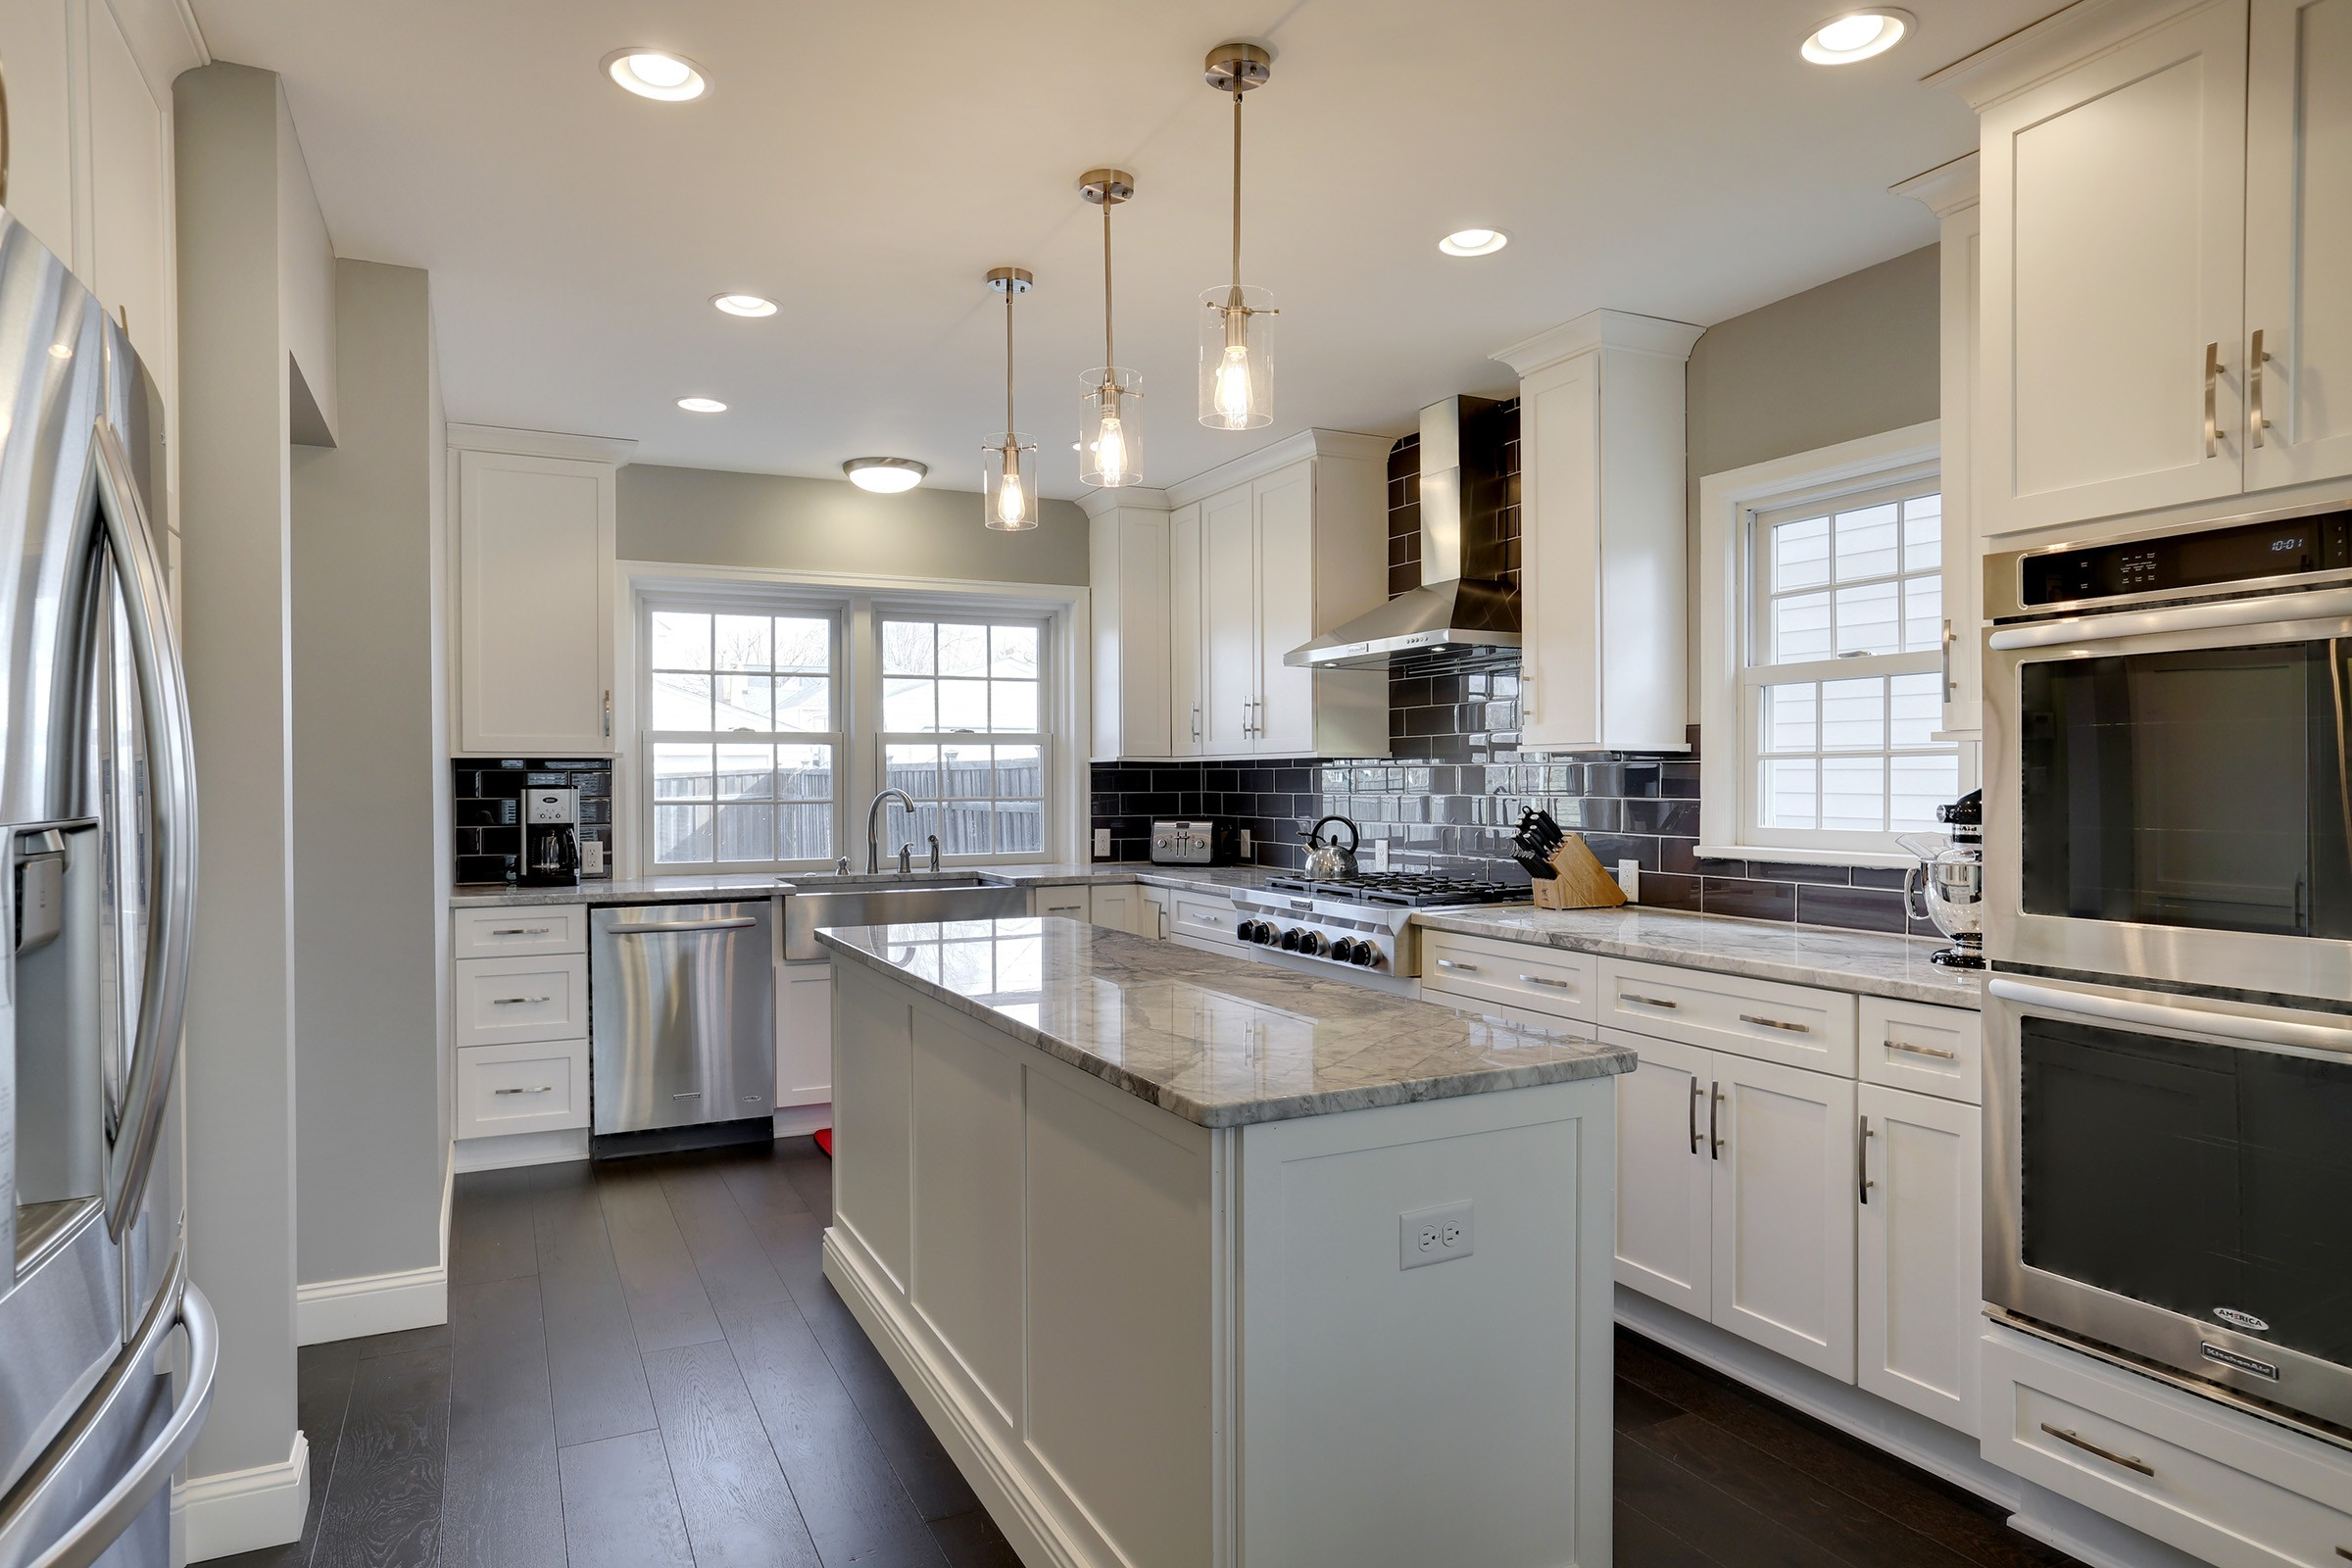 Top Kitchen Remodeling Trends for Millennials - Home Building and ...